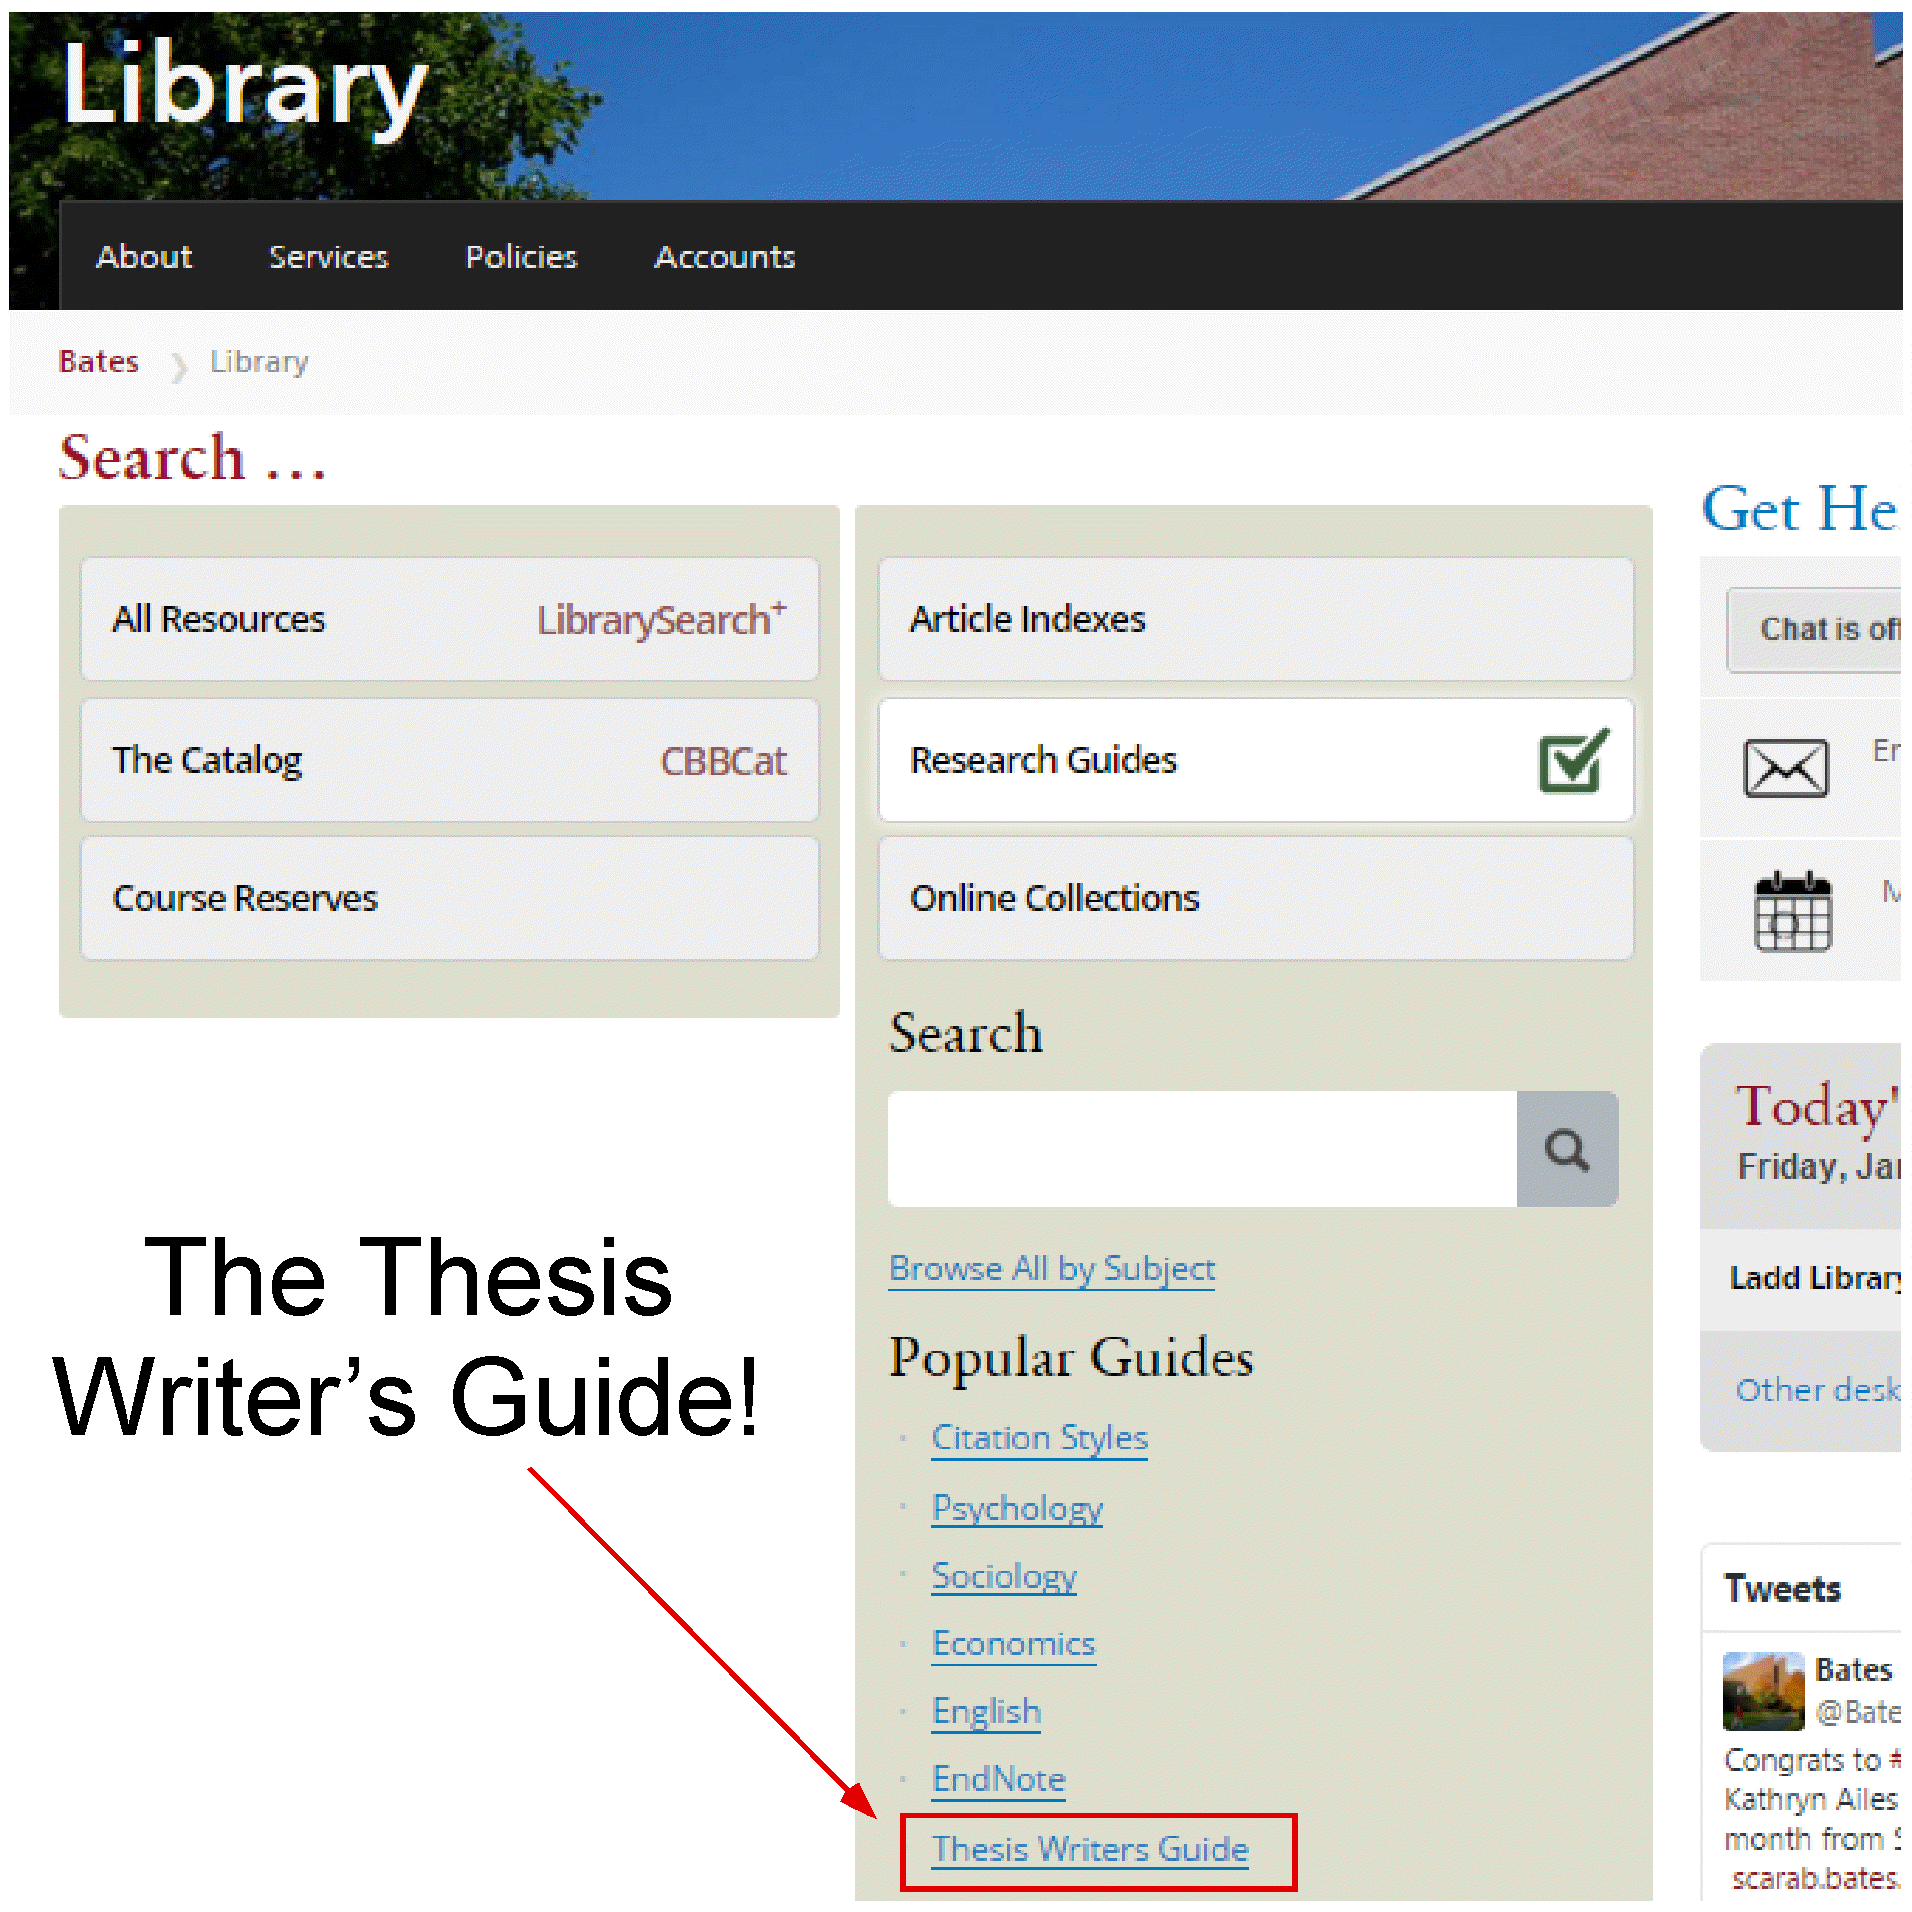 Find Dissertations and Theses - Computer Science - Research Guides at Harvard Library